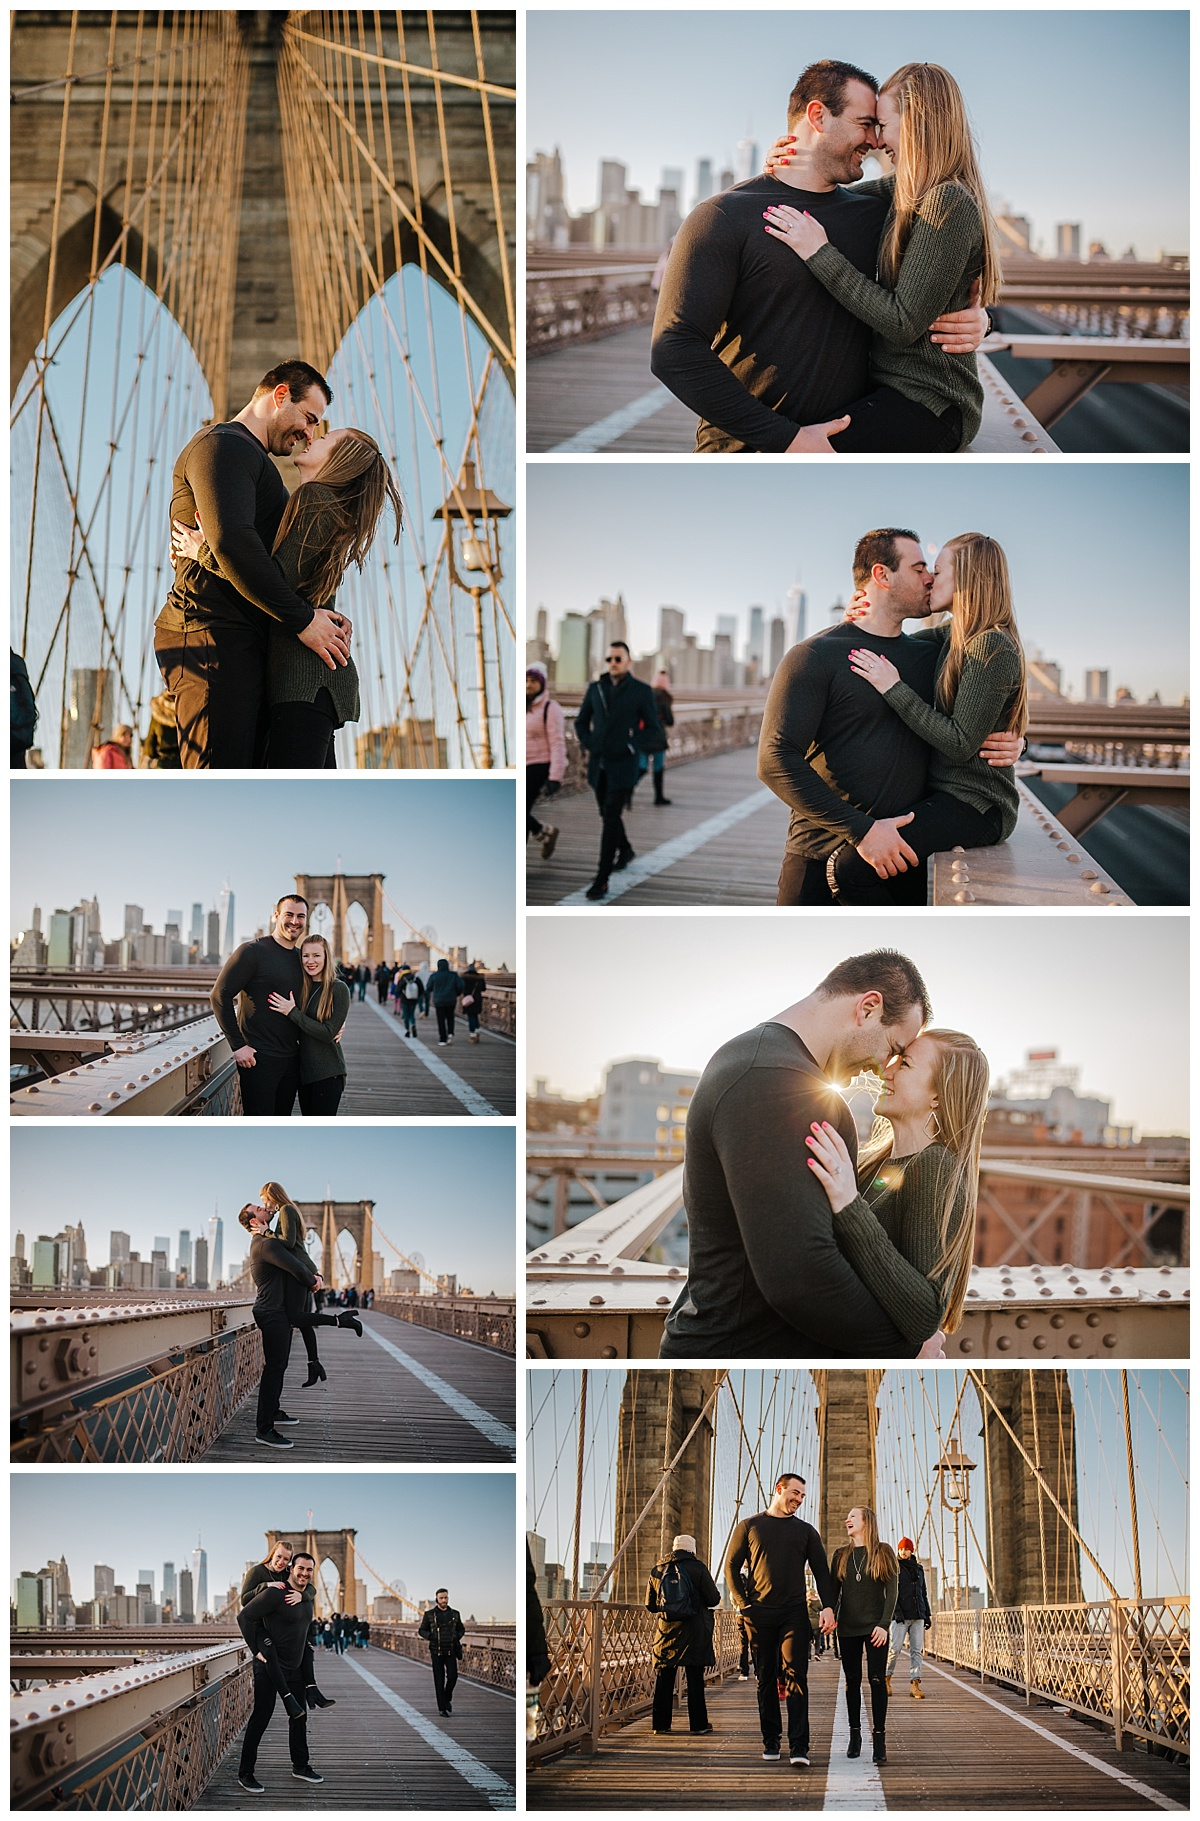 Brooklyn Bridge - NYC Destination Engagement Session - Sara & Tim